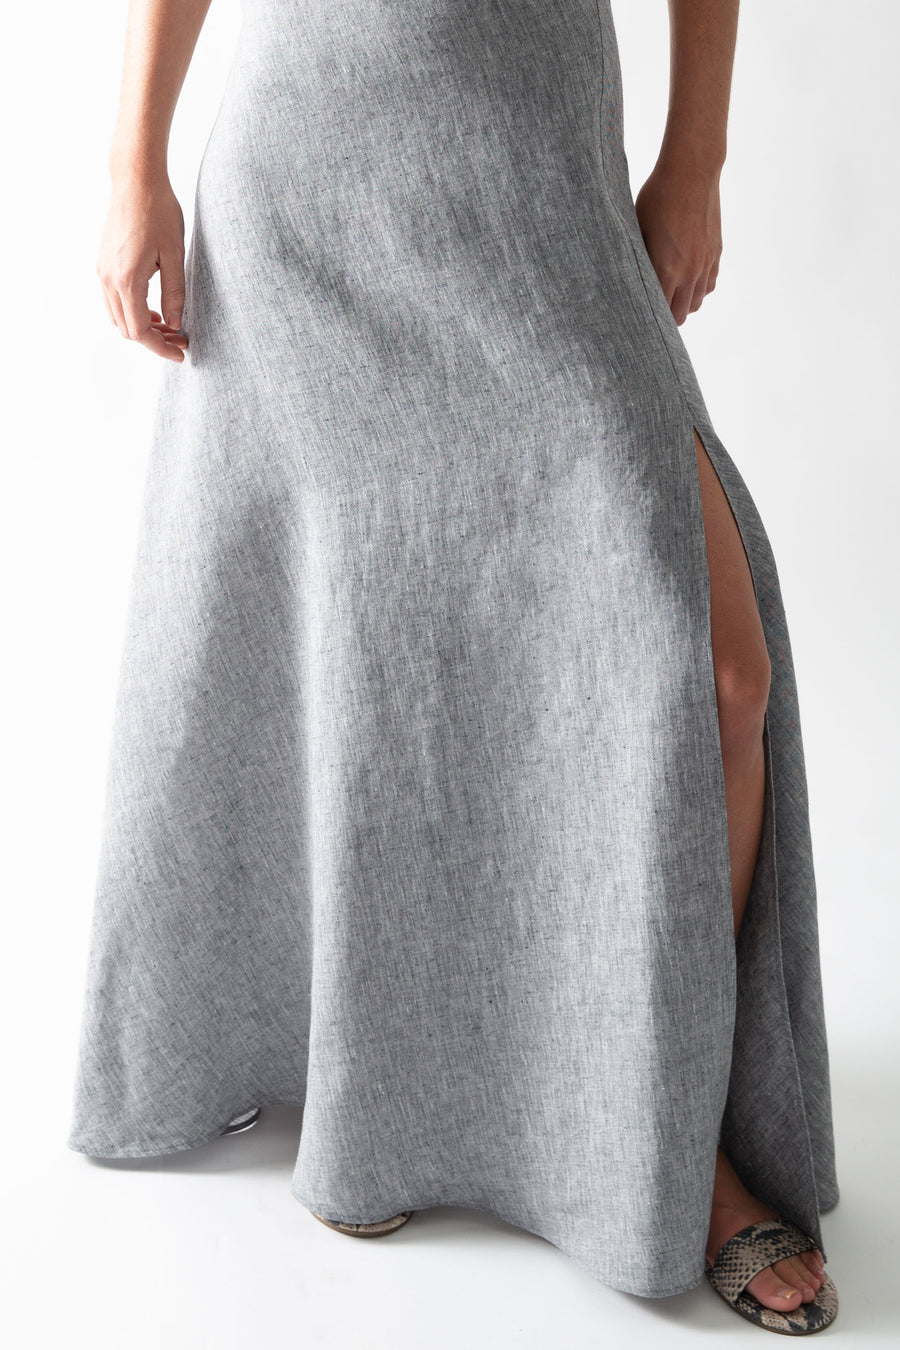 This is a close-up photo of the bottom of the slip dress, showing off the side slit that comes up above the model's knee.